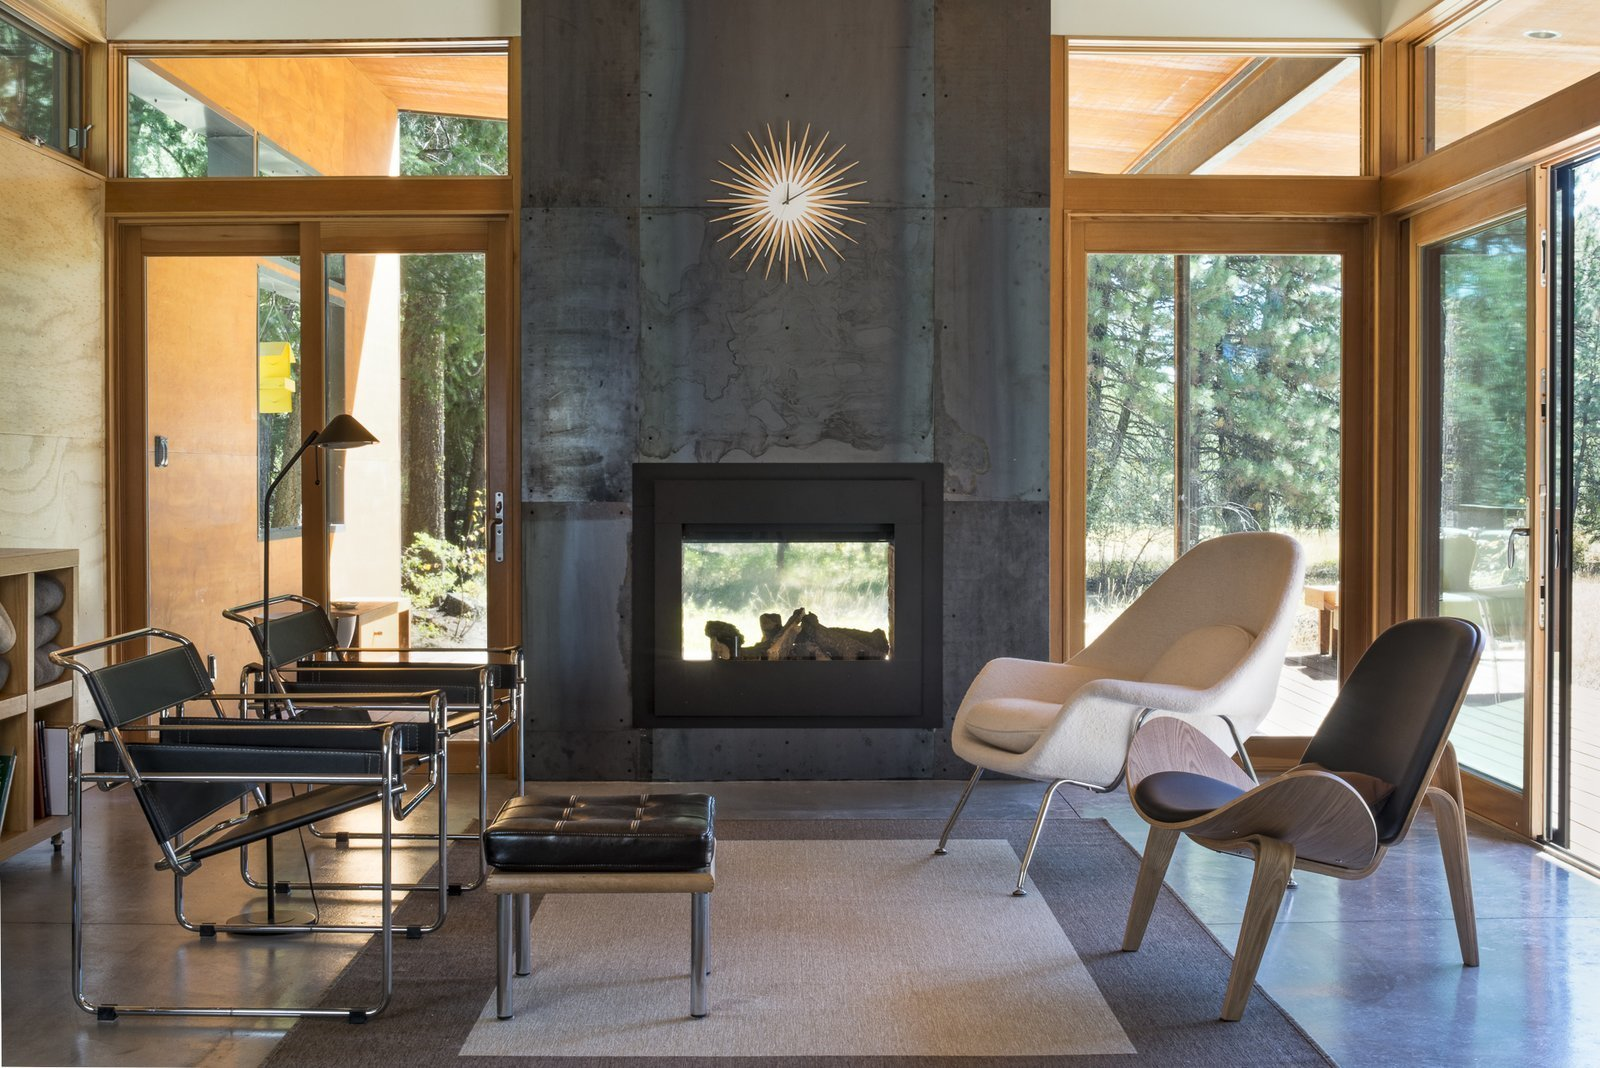 Photo 1 of 10 in 10 Modern Fireplaces That Make For Inviting Interiors